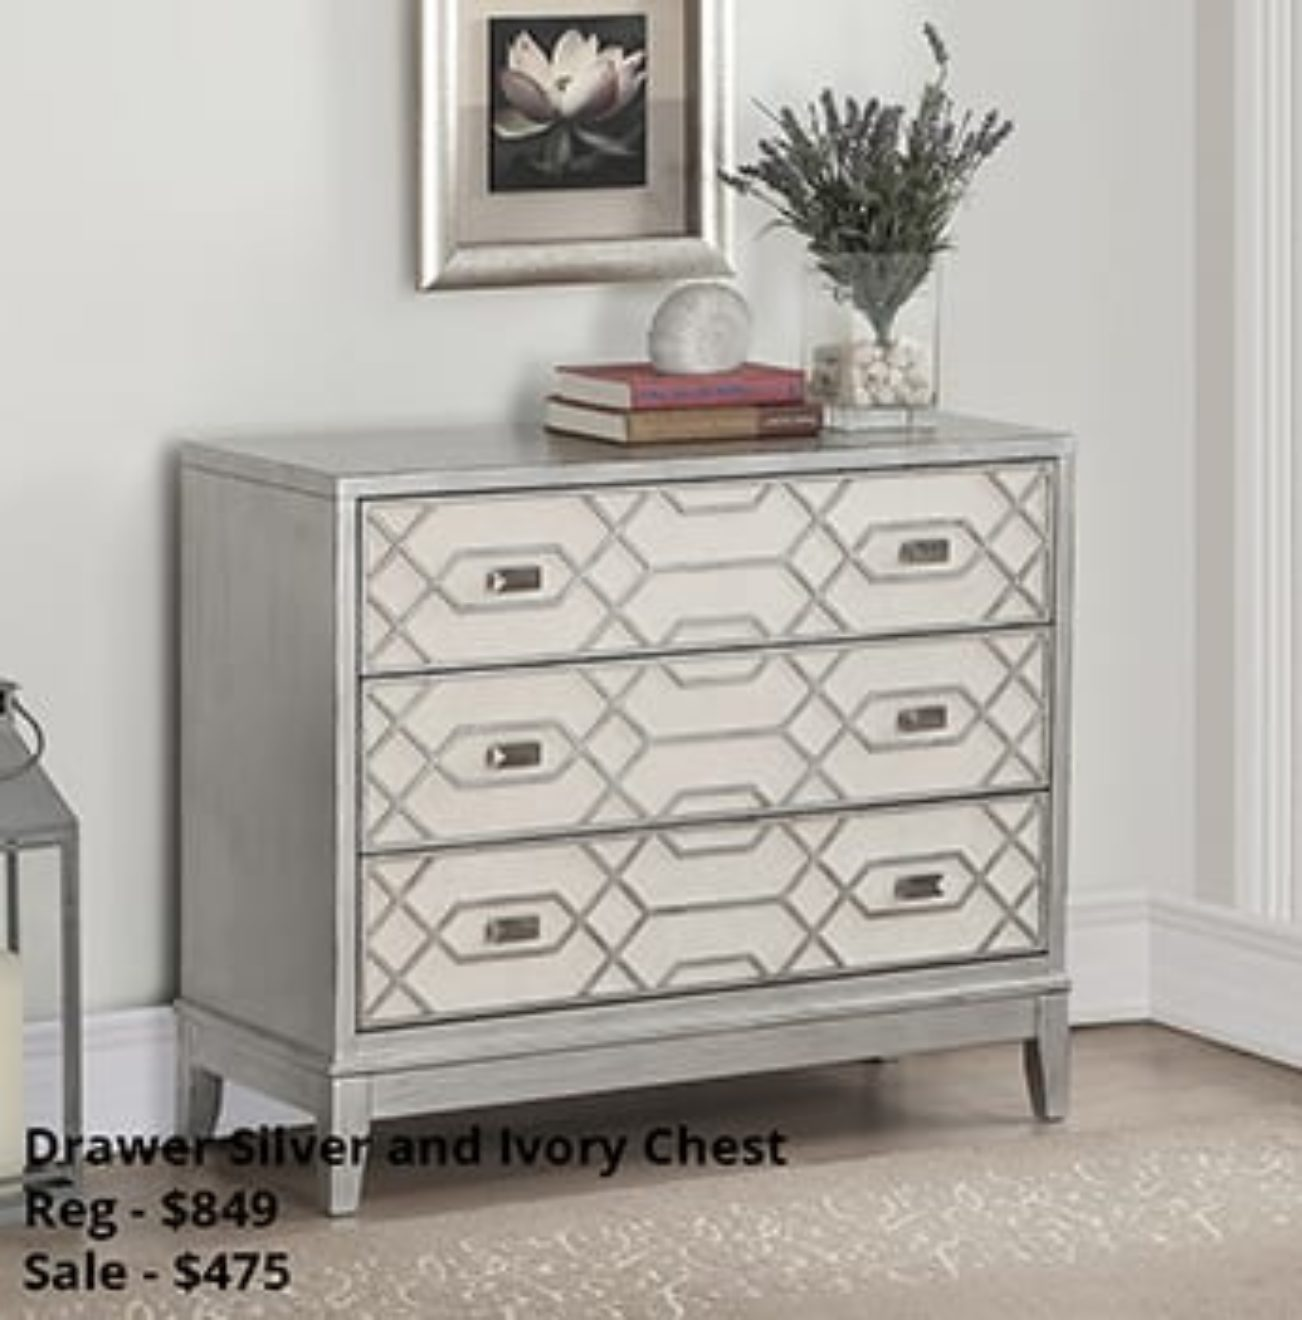 Drawer silver and Ivory chest